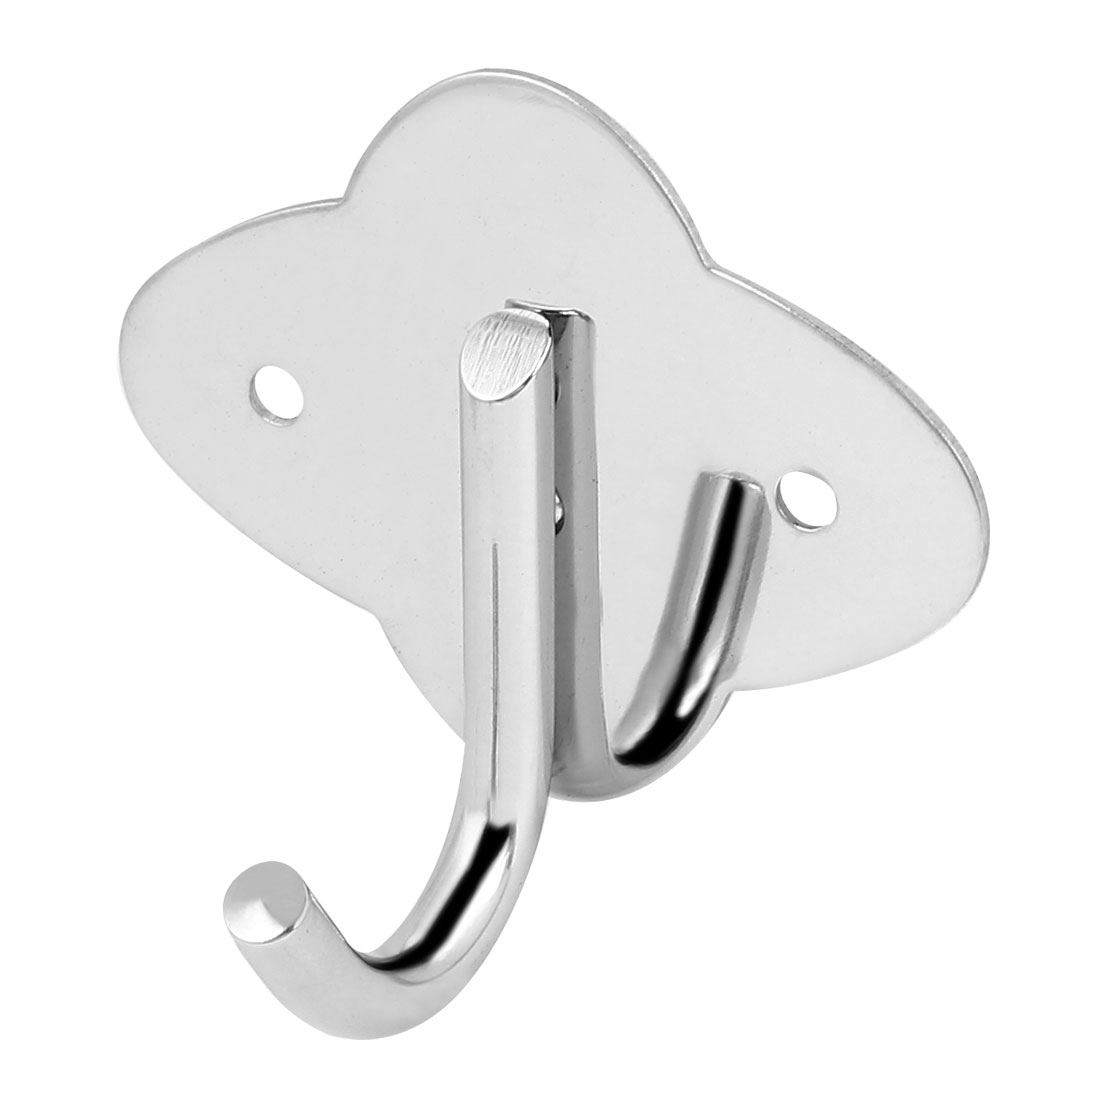 Bedroom Clothes Coat Single Hanger Stainless Steel Wall Mount Hanging Hook